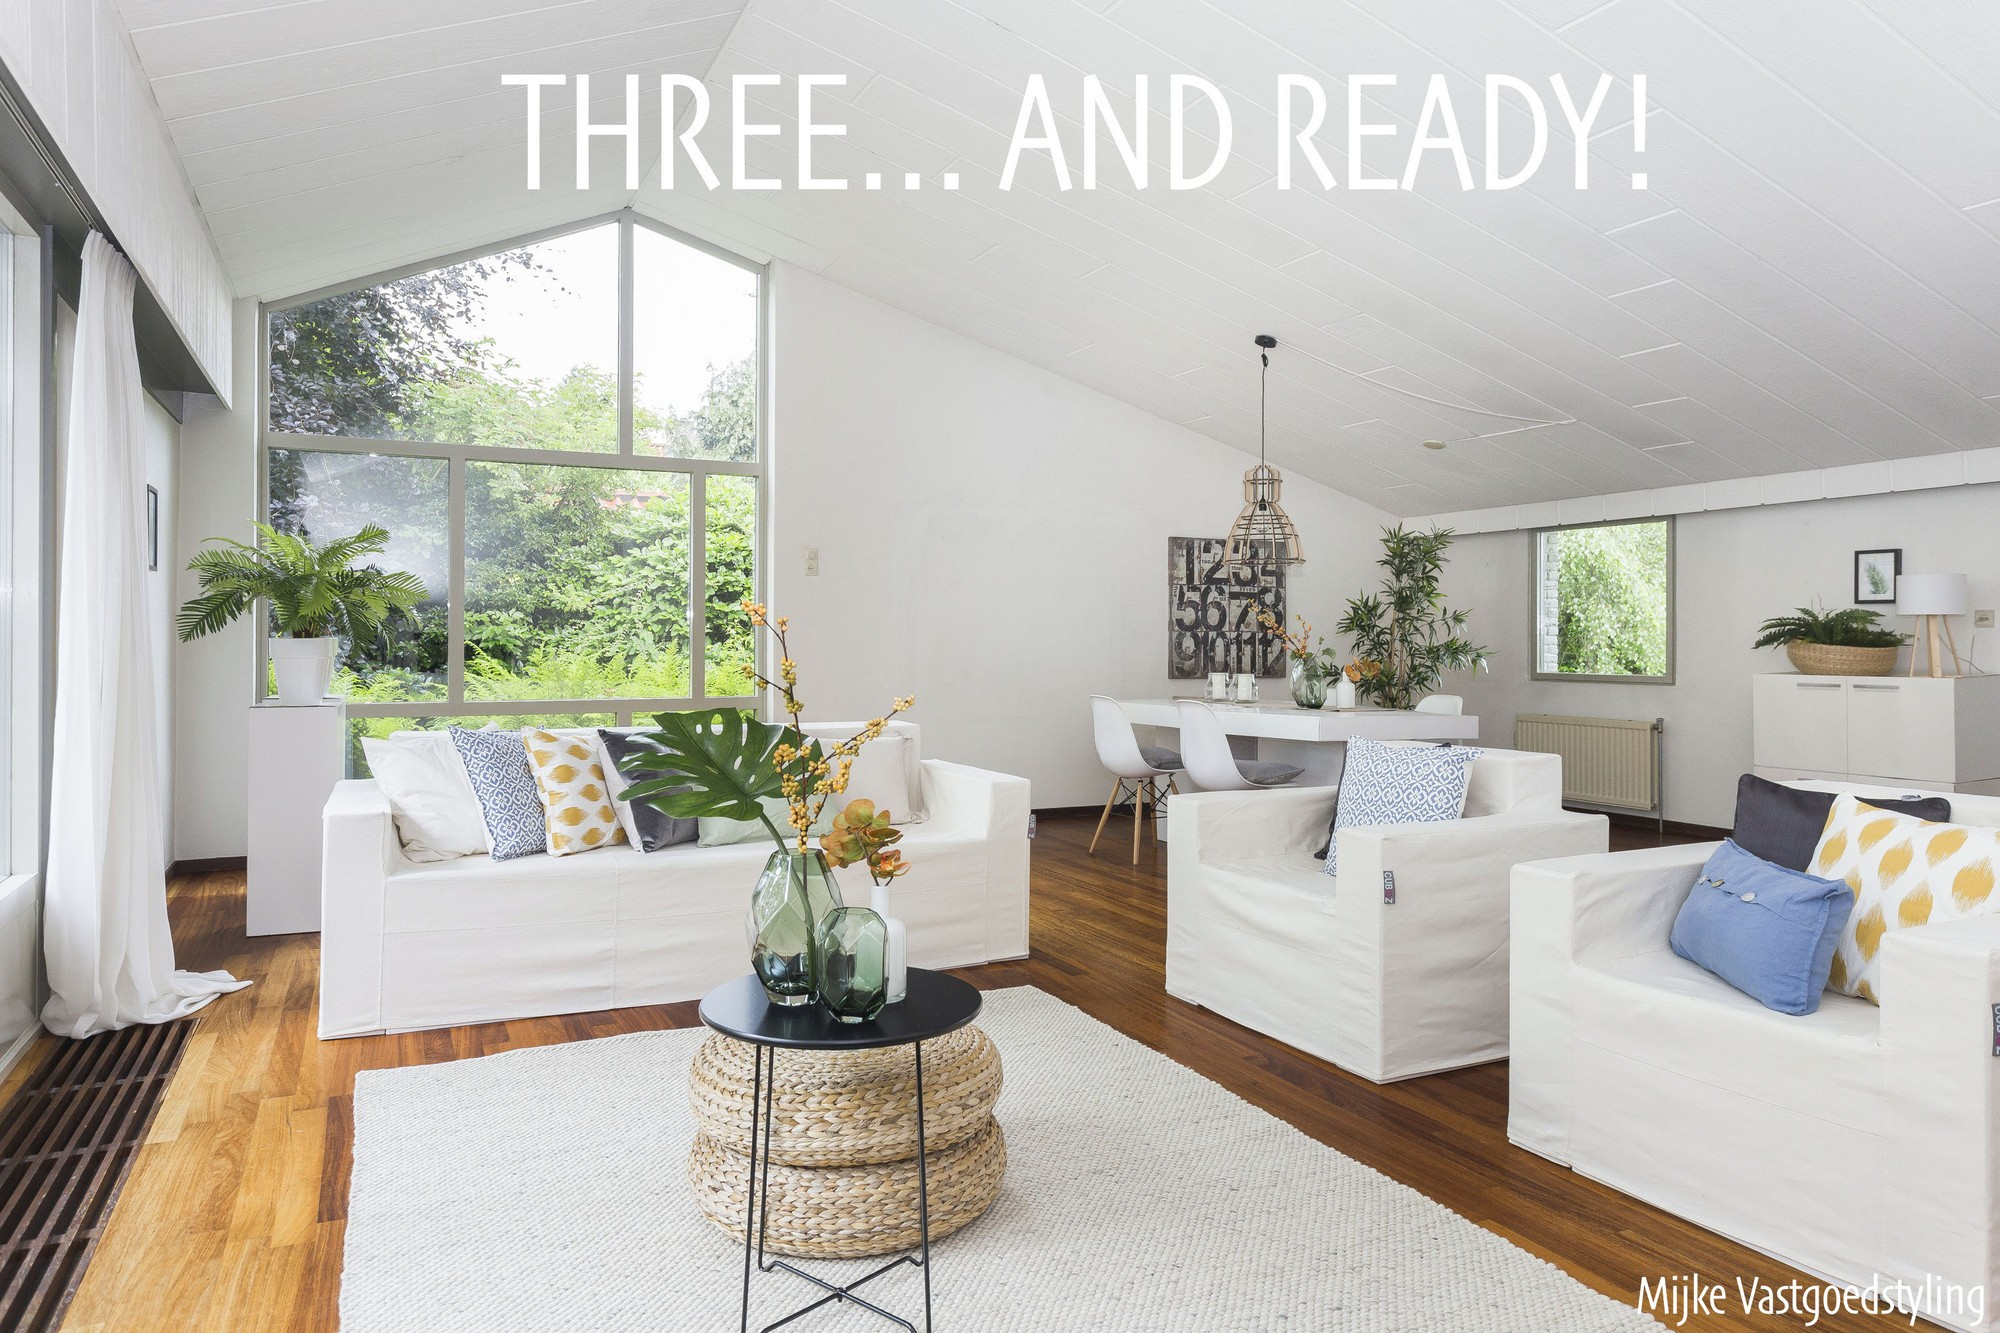 CUBIQZ Home Staging with cardboard furniture 1,2,3 and ready!